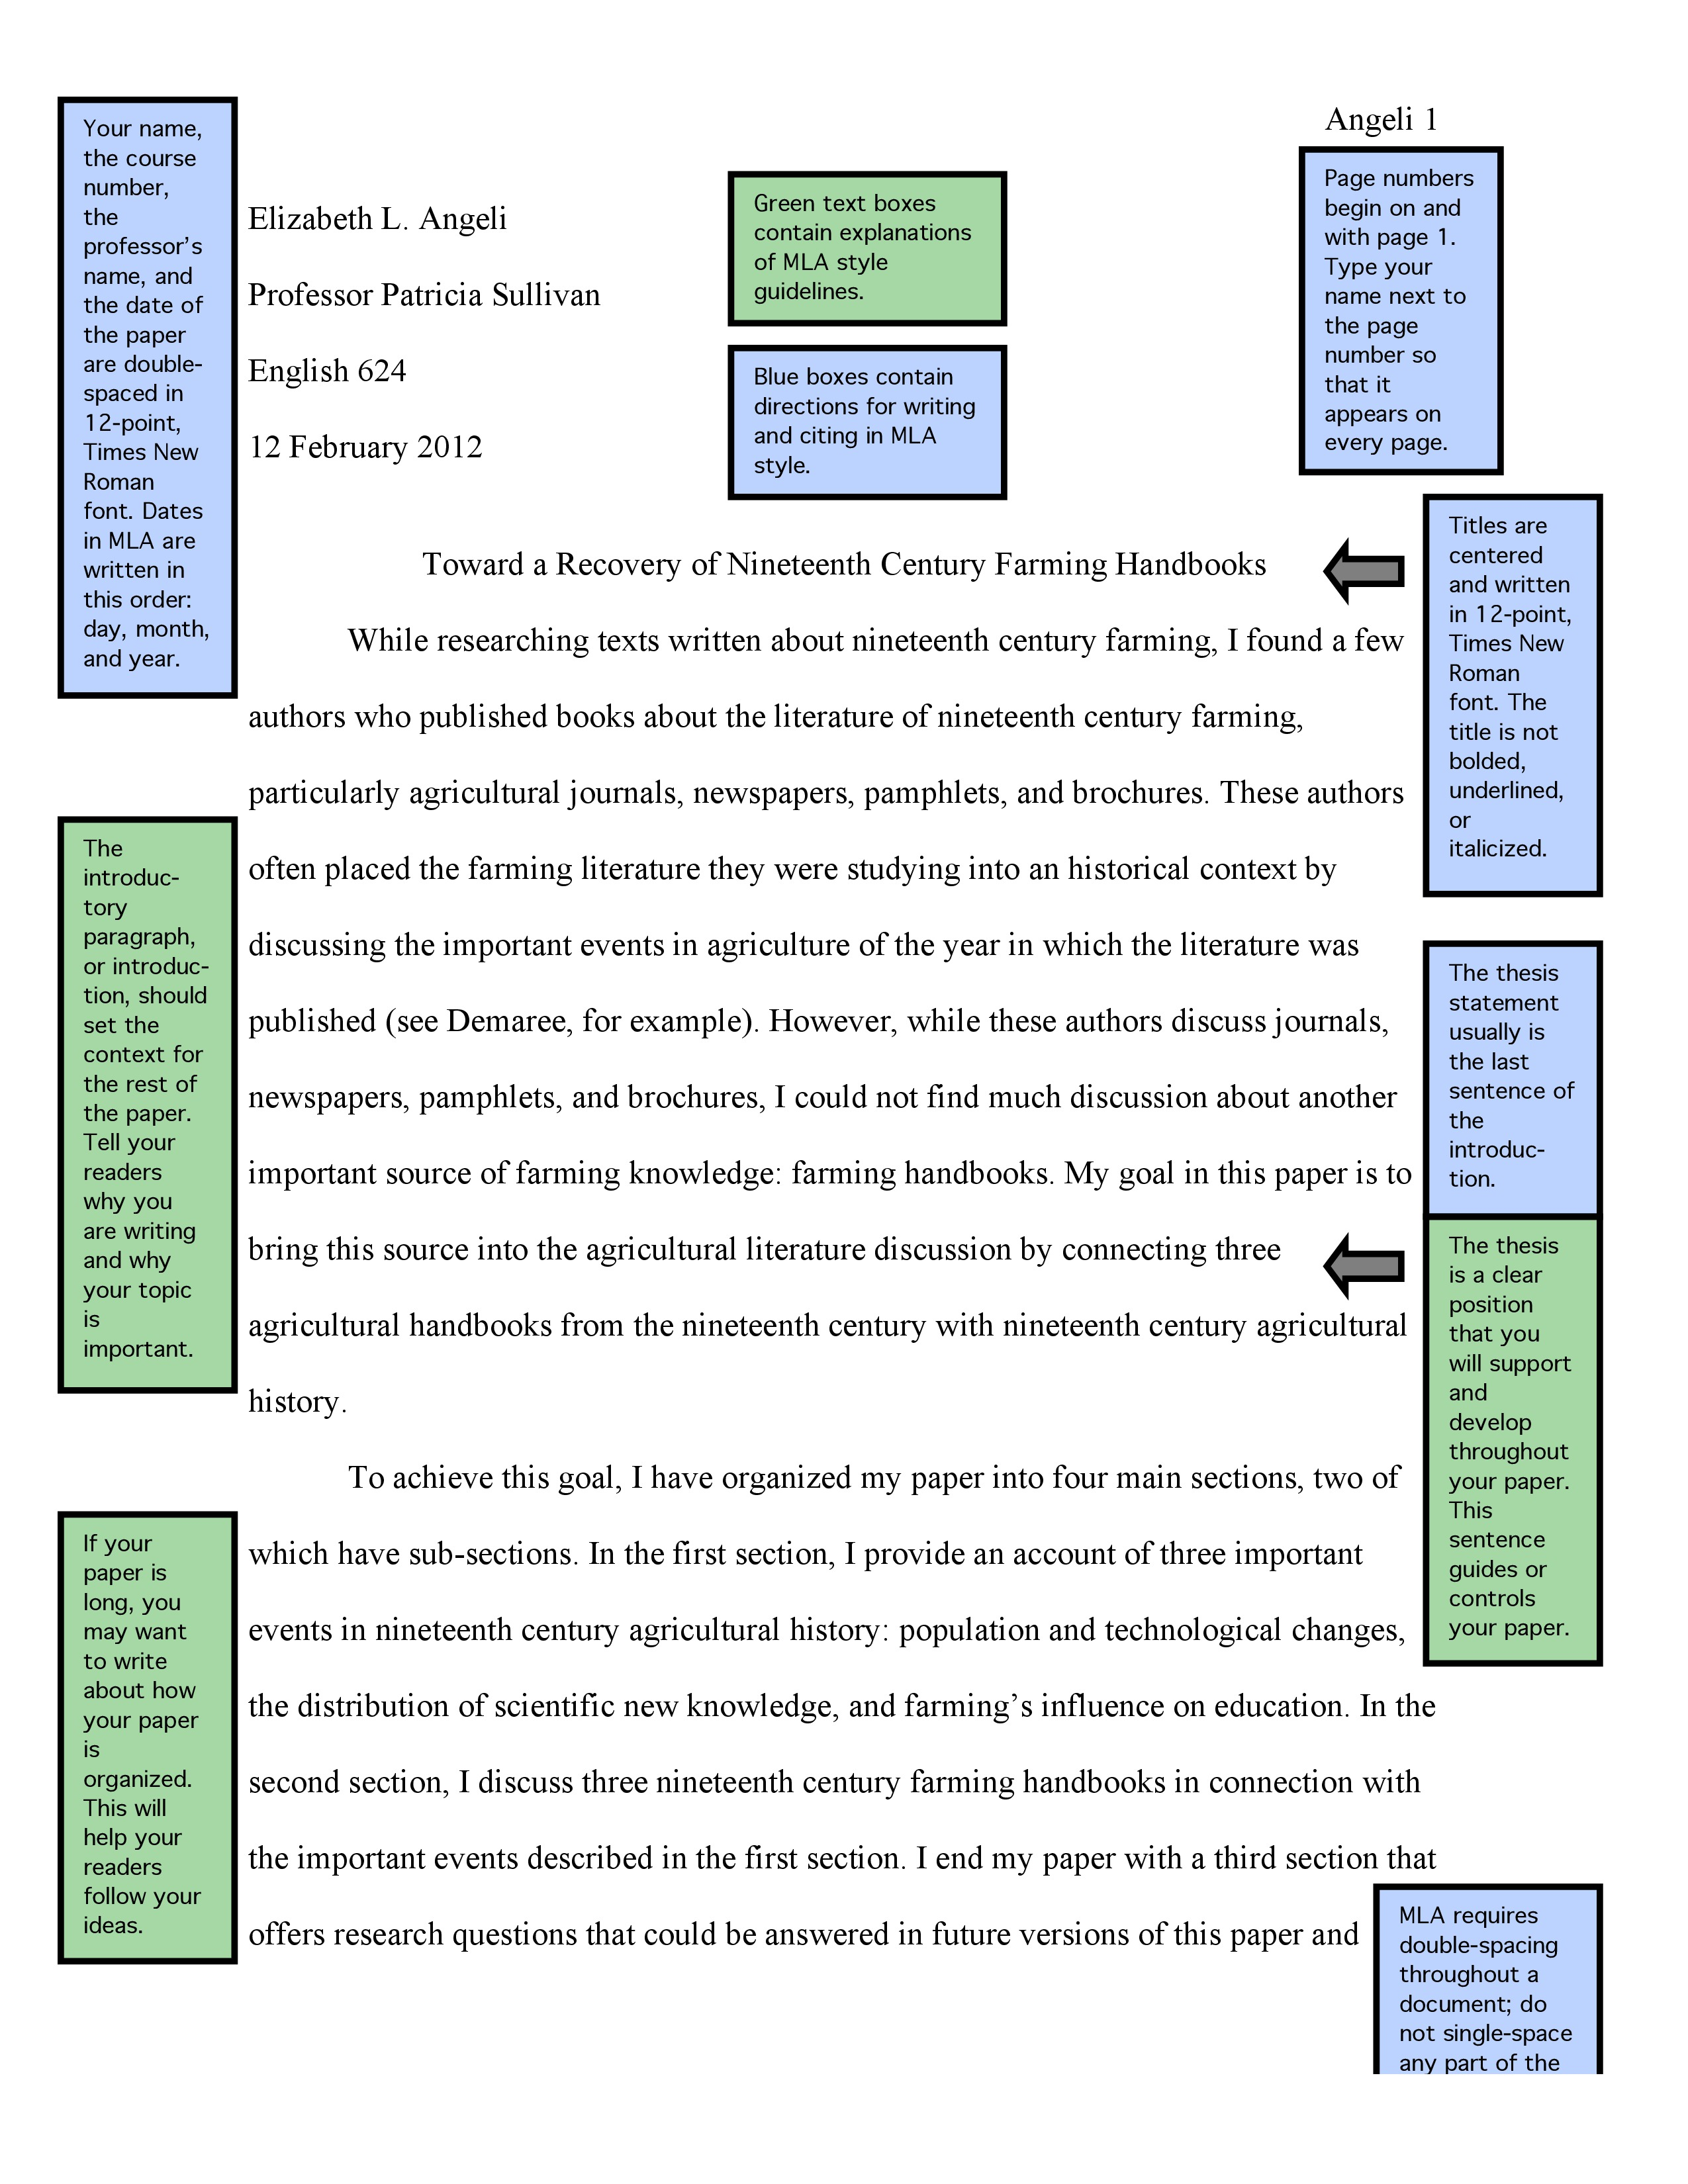 005 Research Paper Purdue Owl Page Stunning Citations Outline Example Sample Full